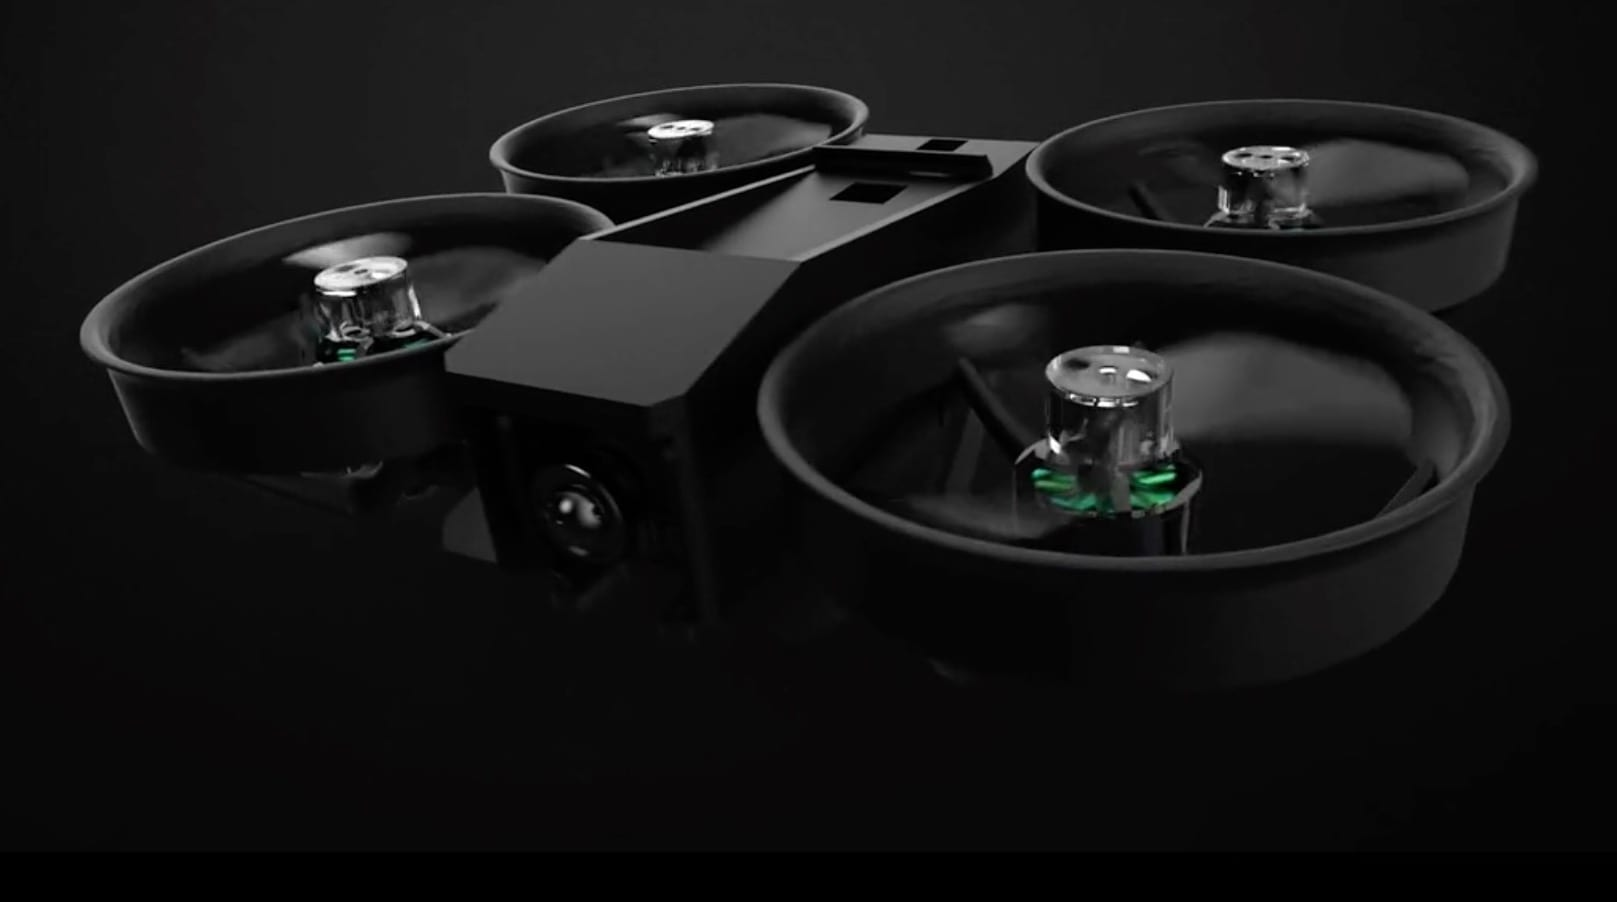 Meet the Beagle Nova, a 4K 60fps FPV drone that weighs less then 250 grams